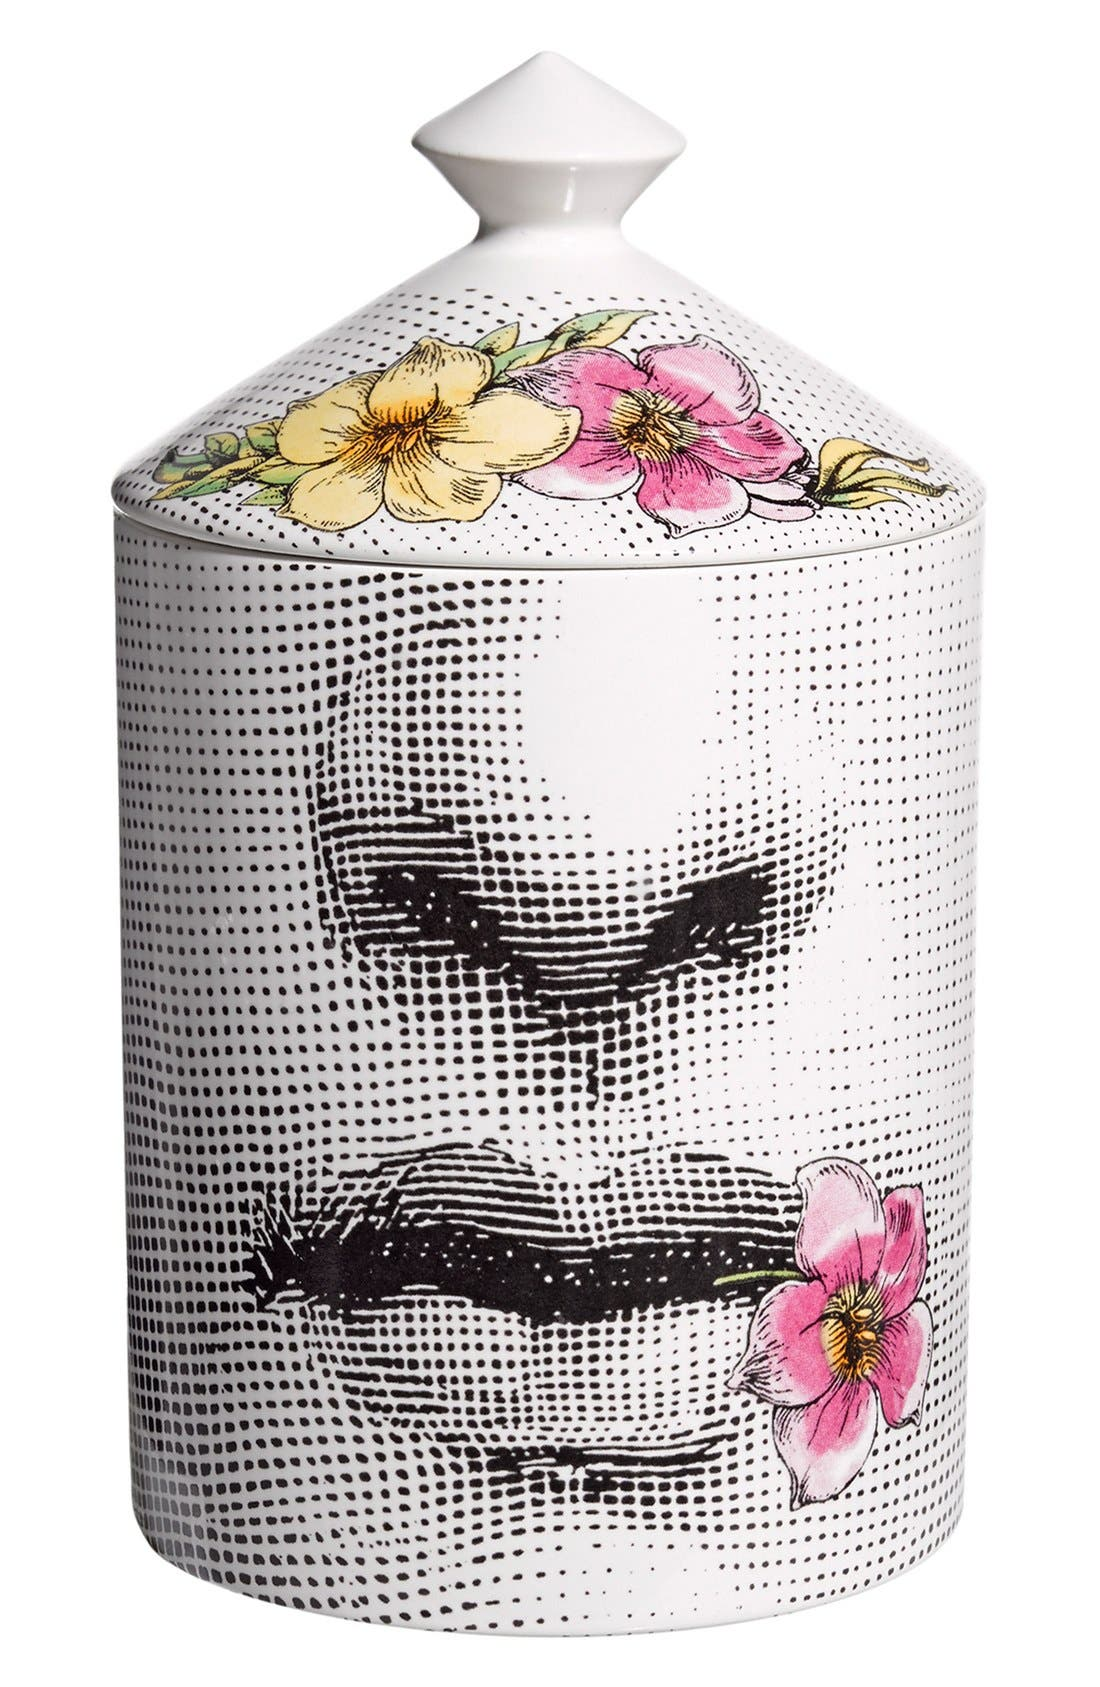 Alternate Image 1 Selected - Fornasetti 'Fior di Bacio - Flora' Lidded Candle